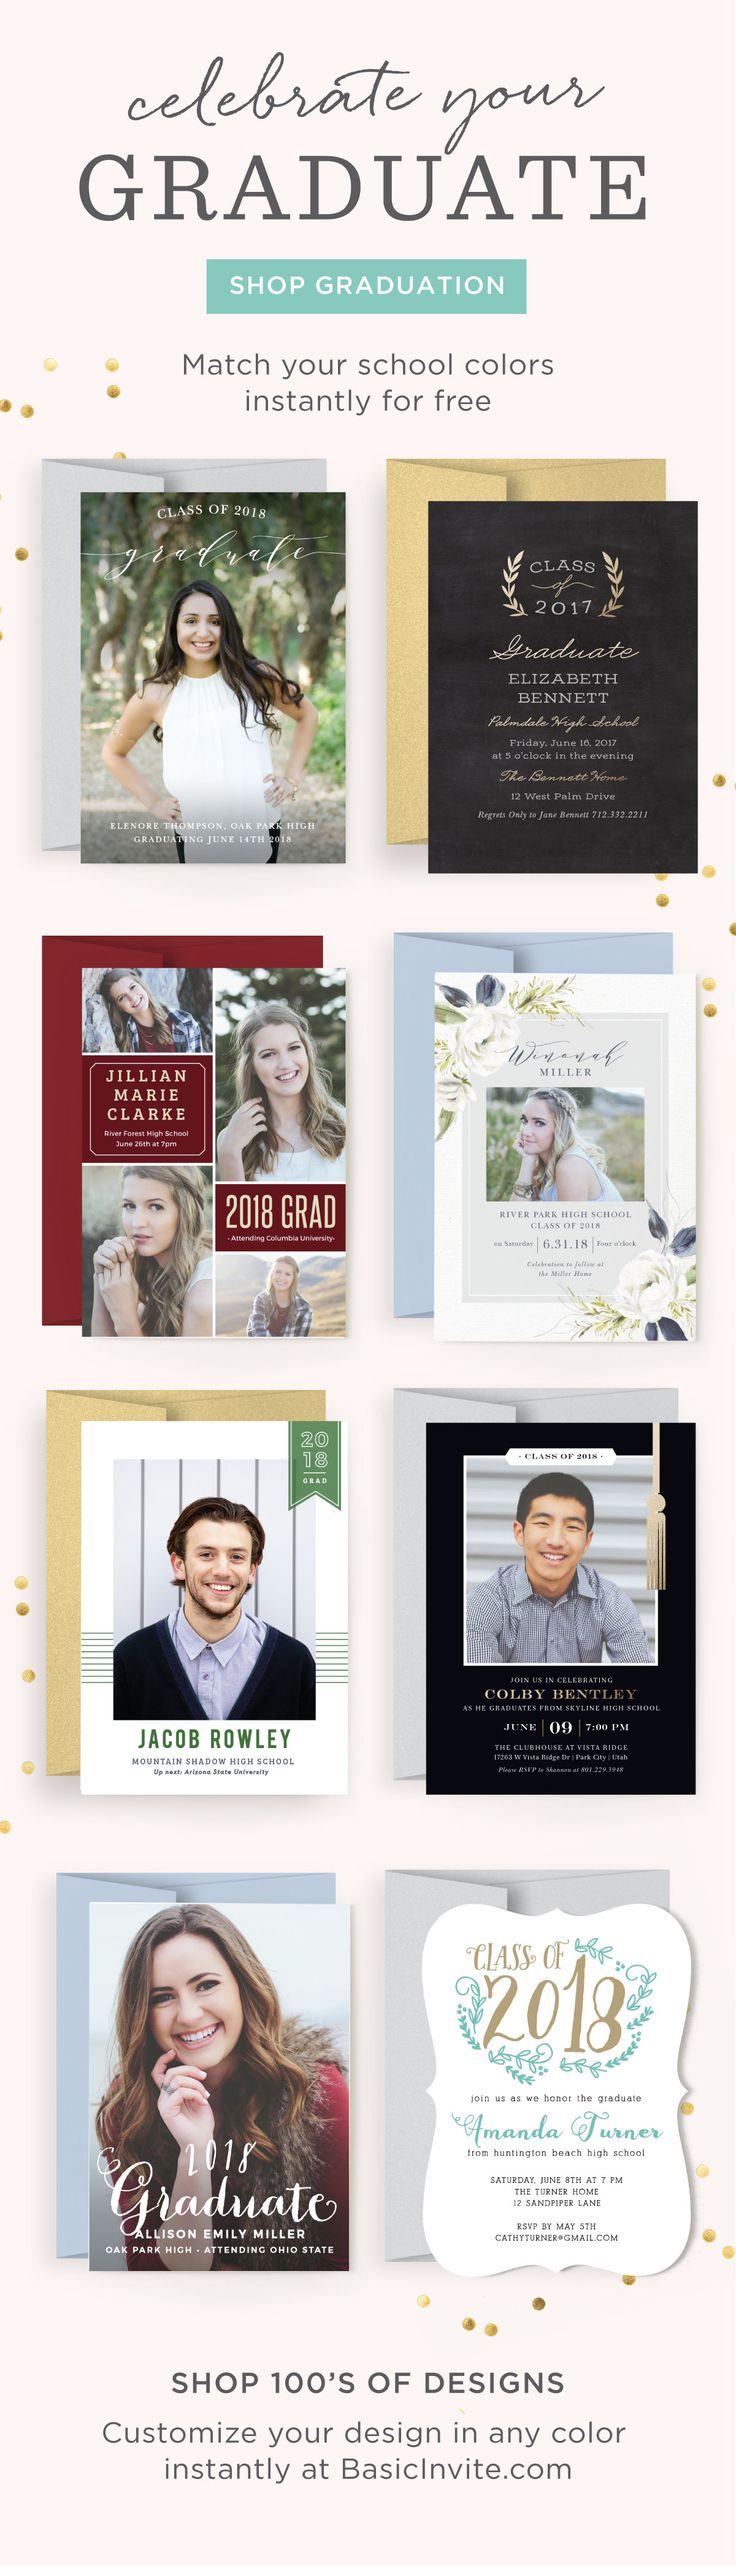 Celebrate your soon-to-be grad with Basic Invite's new line of completely customizable graduation invitations. With so many themes, color options and fonts on our easy to use website, the hardest part will be choosing just one!